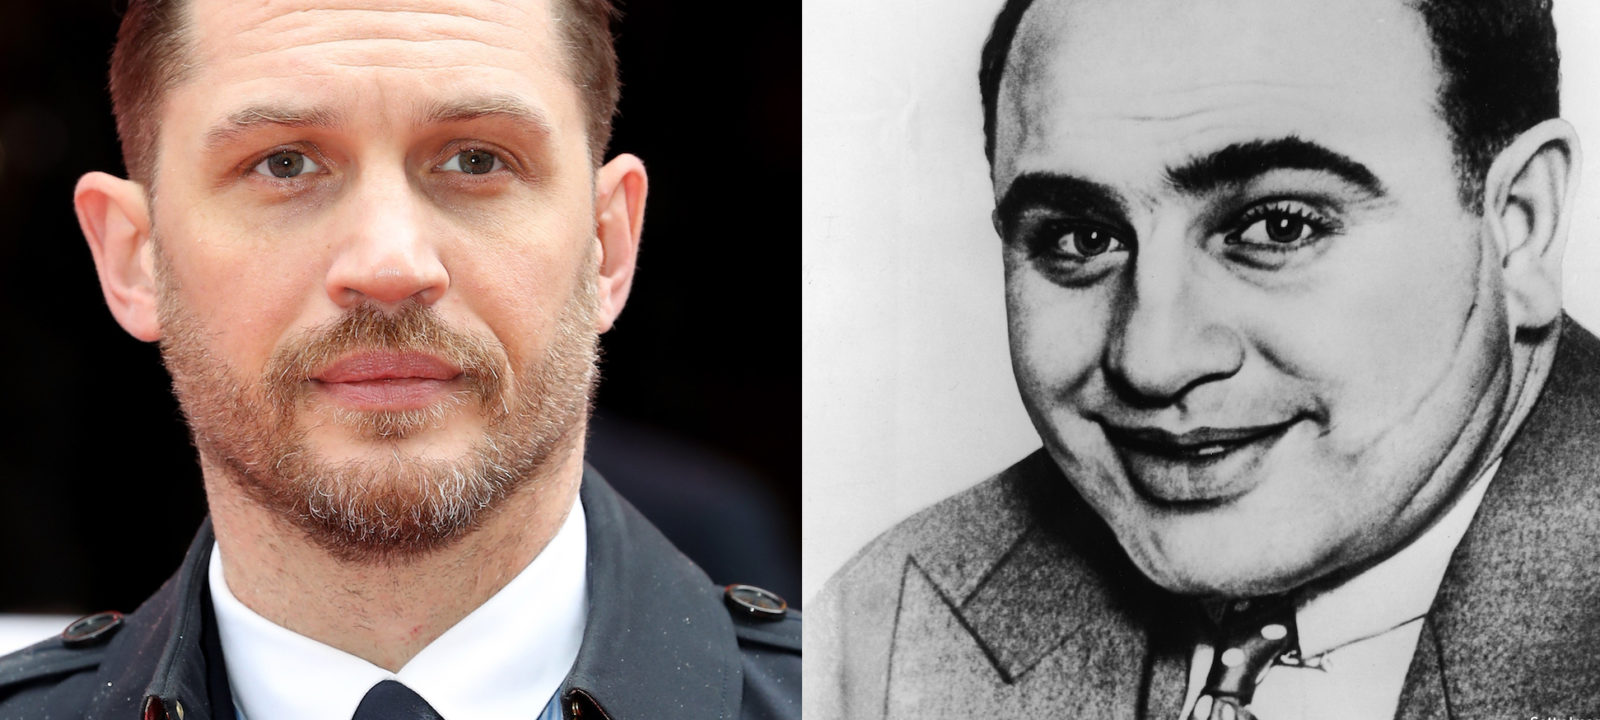 Tom Hardy and Al Capone (composite)